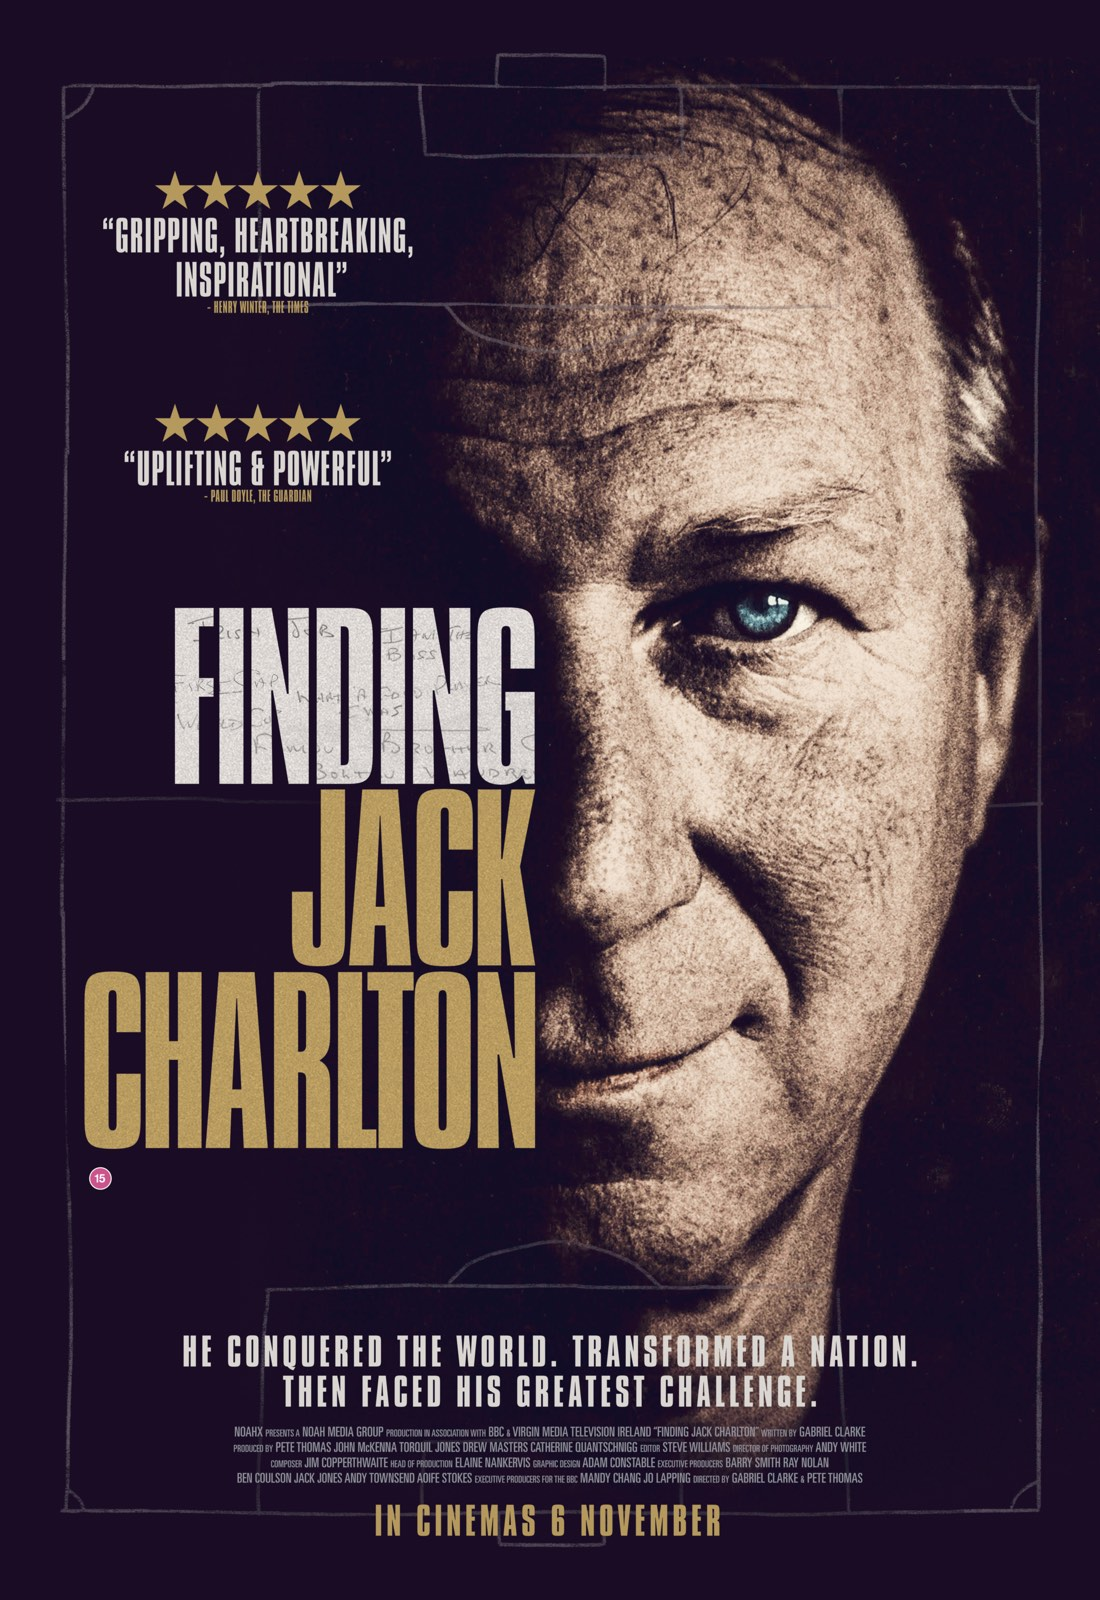 Finding Jack Charlton - gripping new documentary coming to cinemas 6 November